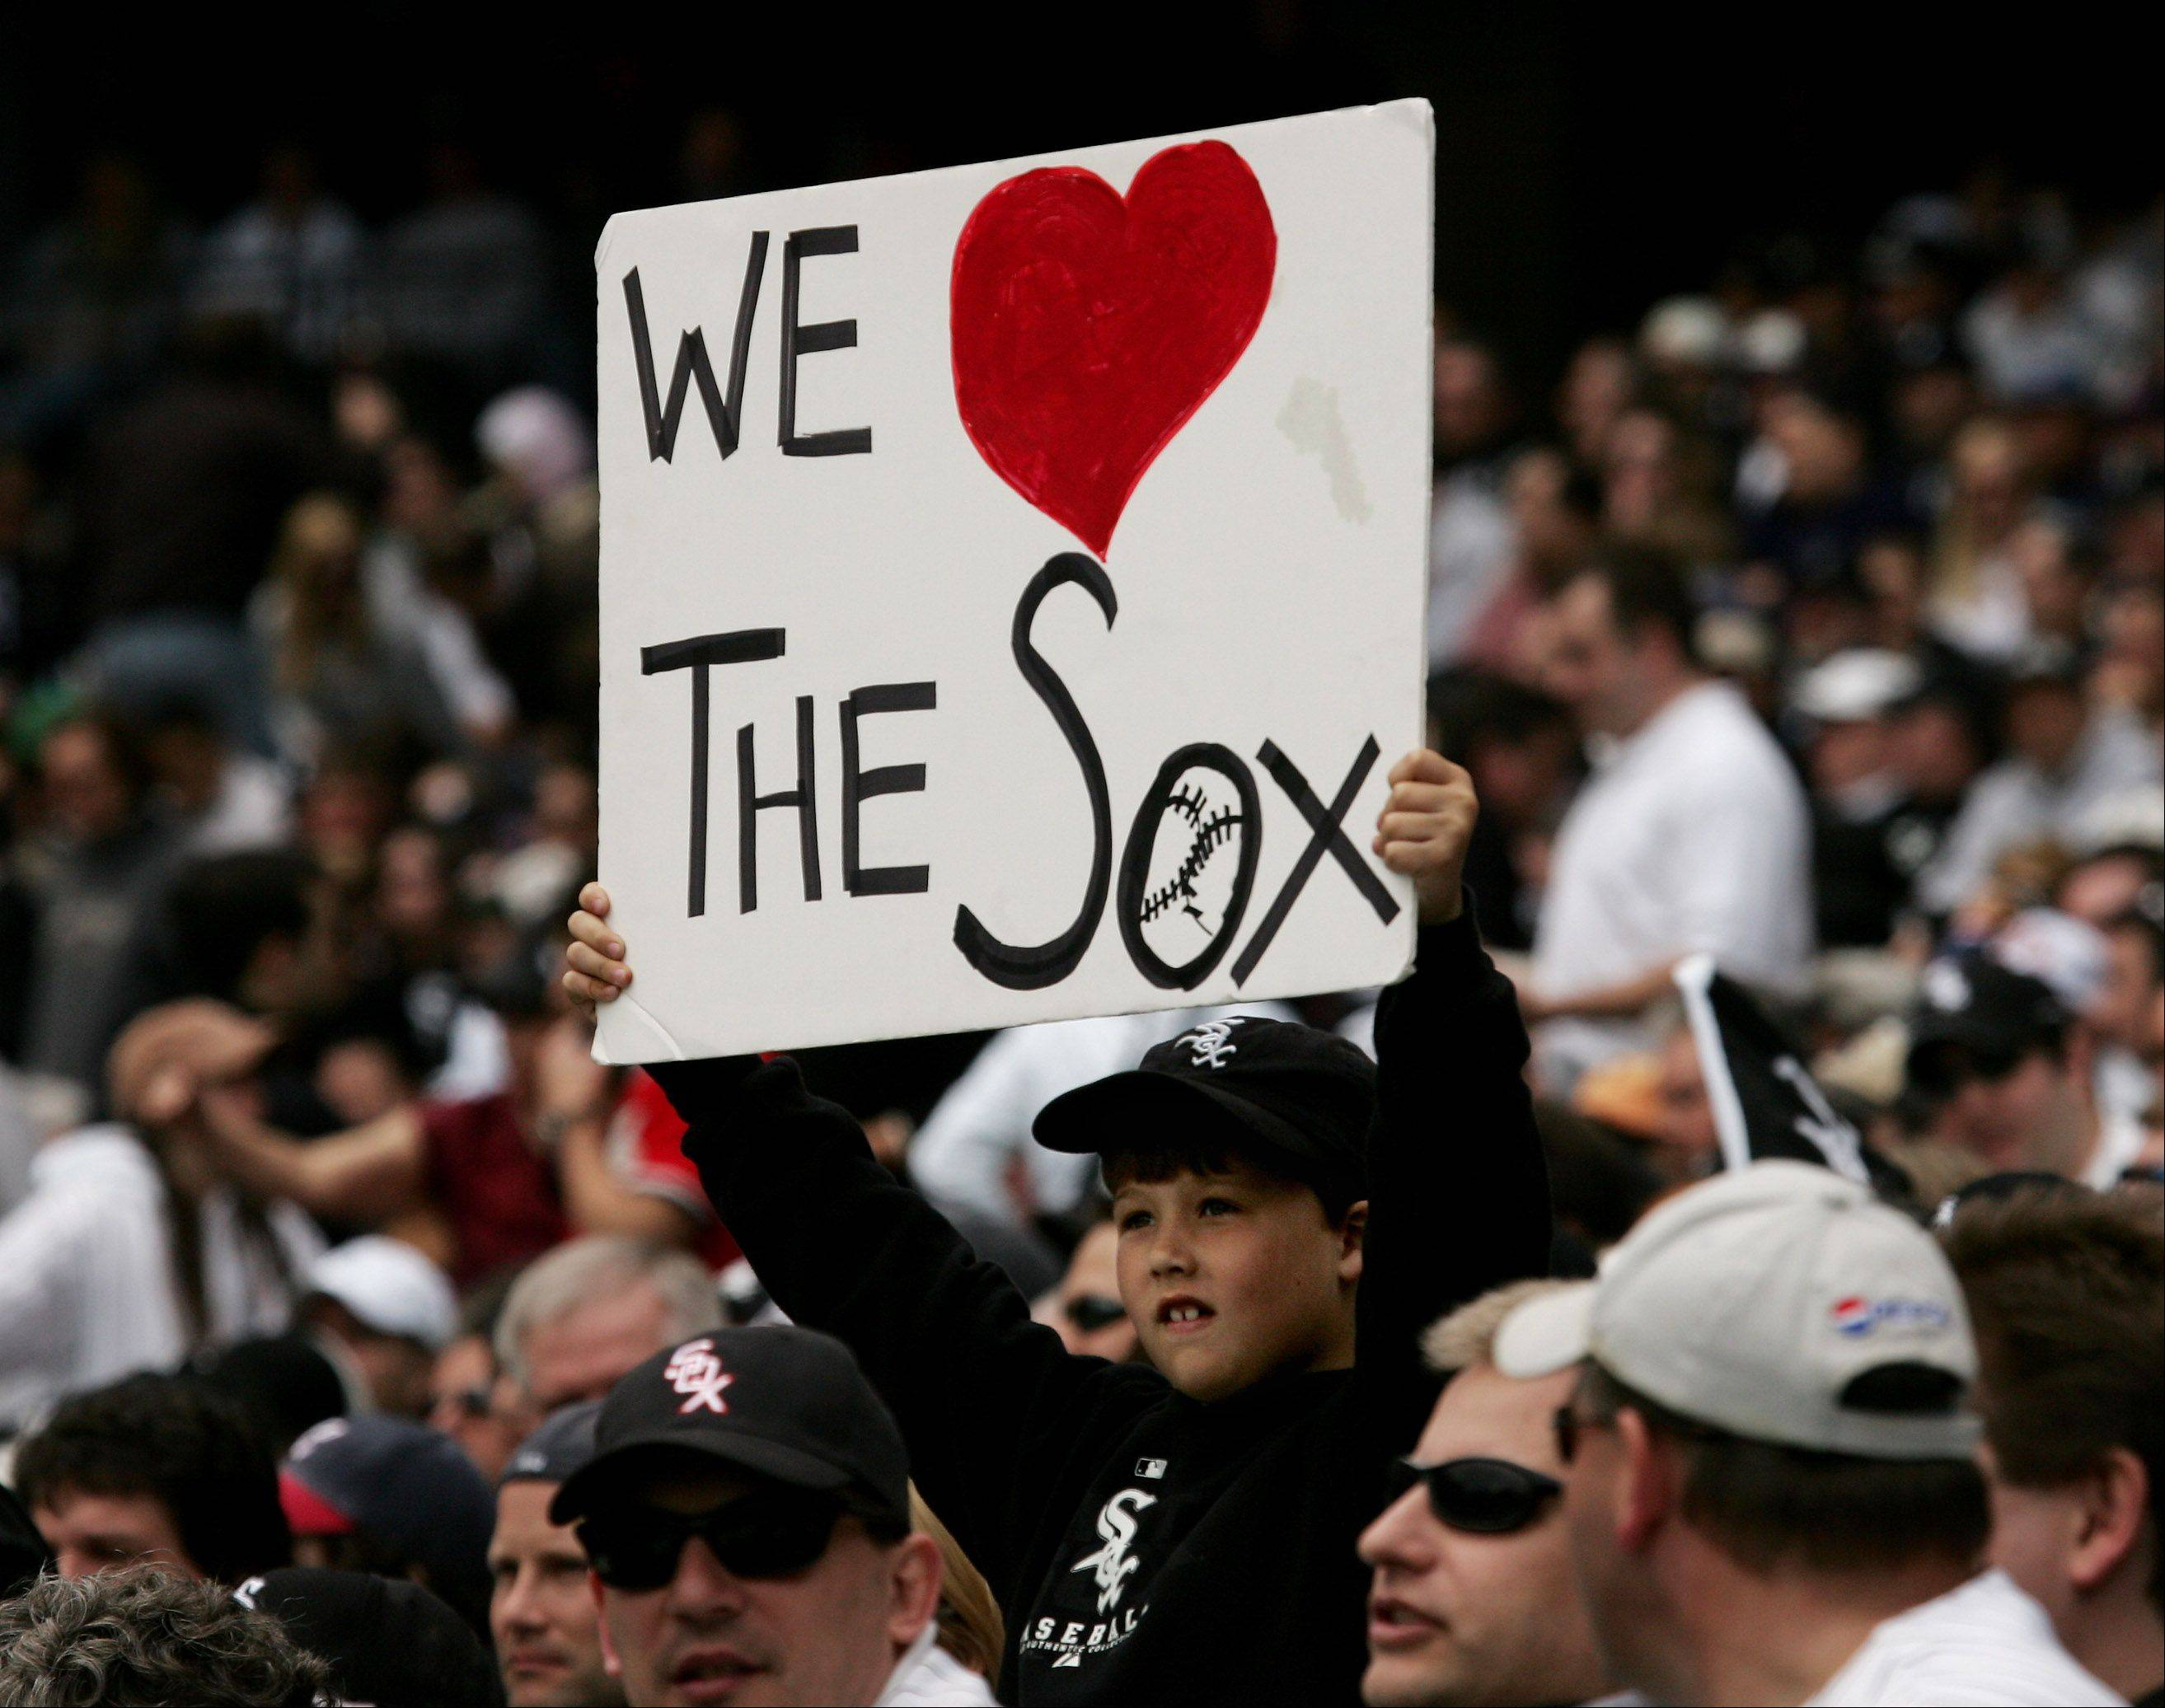 A young fan holds up a sign showing his support for the team during the Chicago White Sox opening day.